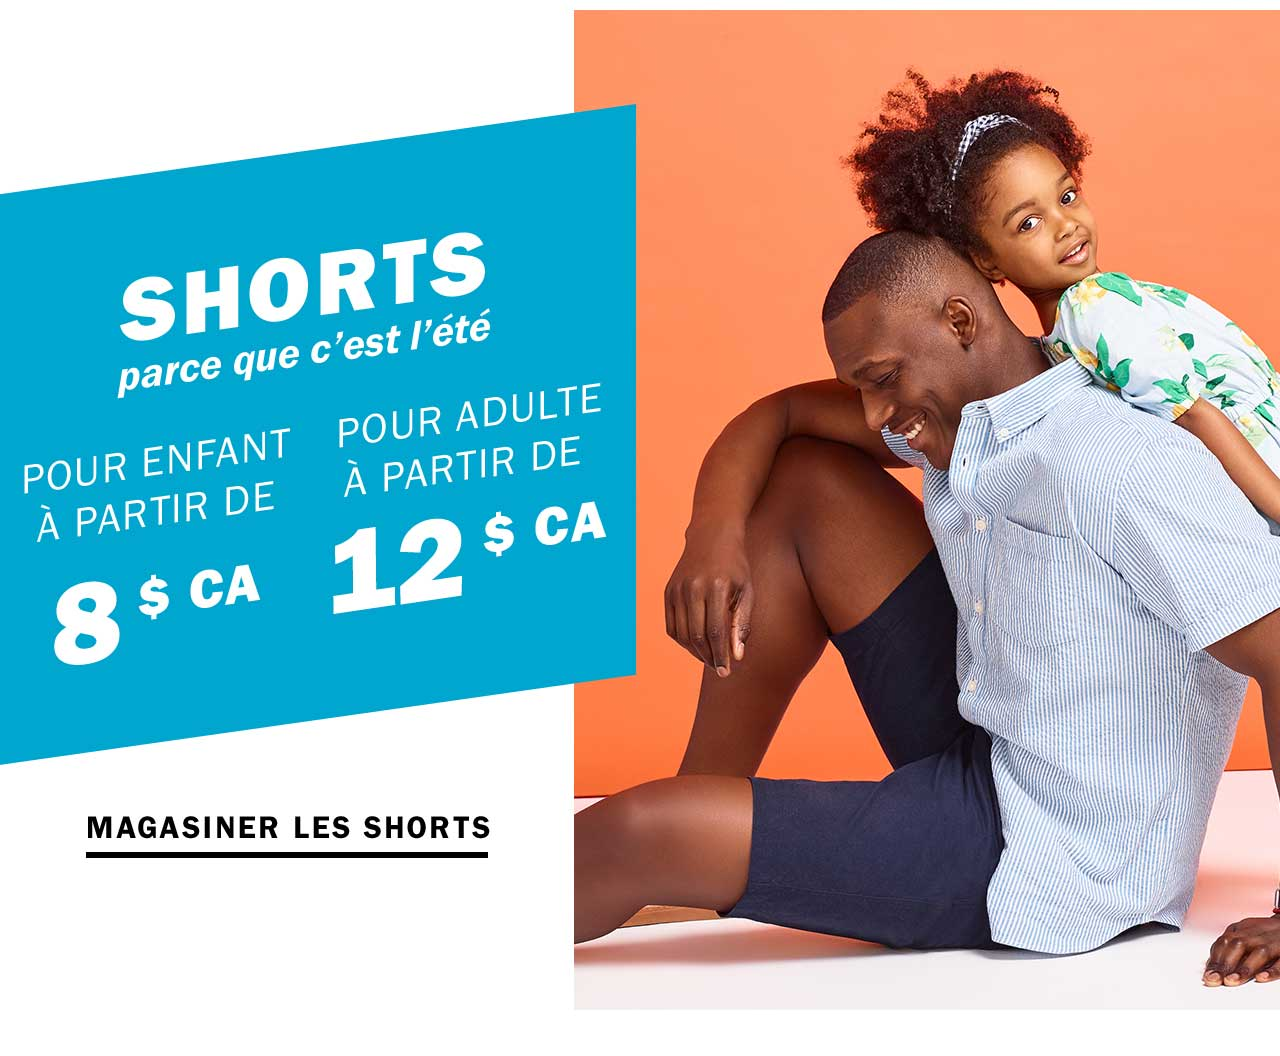 SHORTS | MAGASINER LES SHORTS